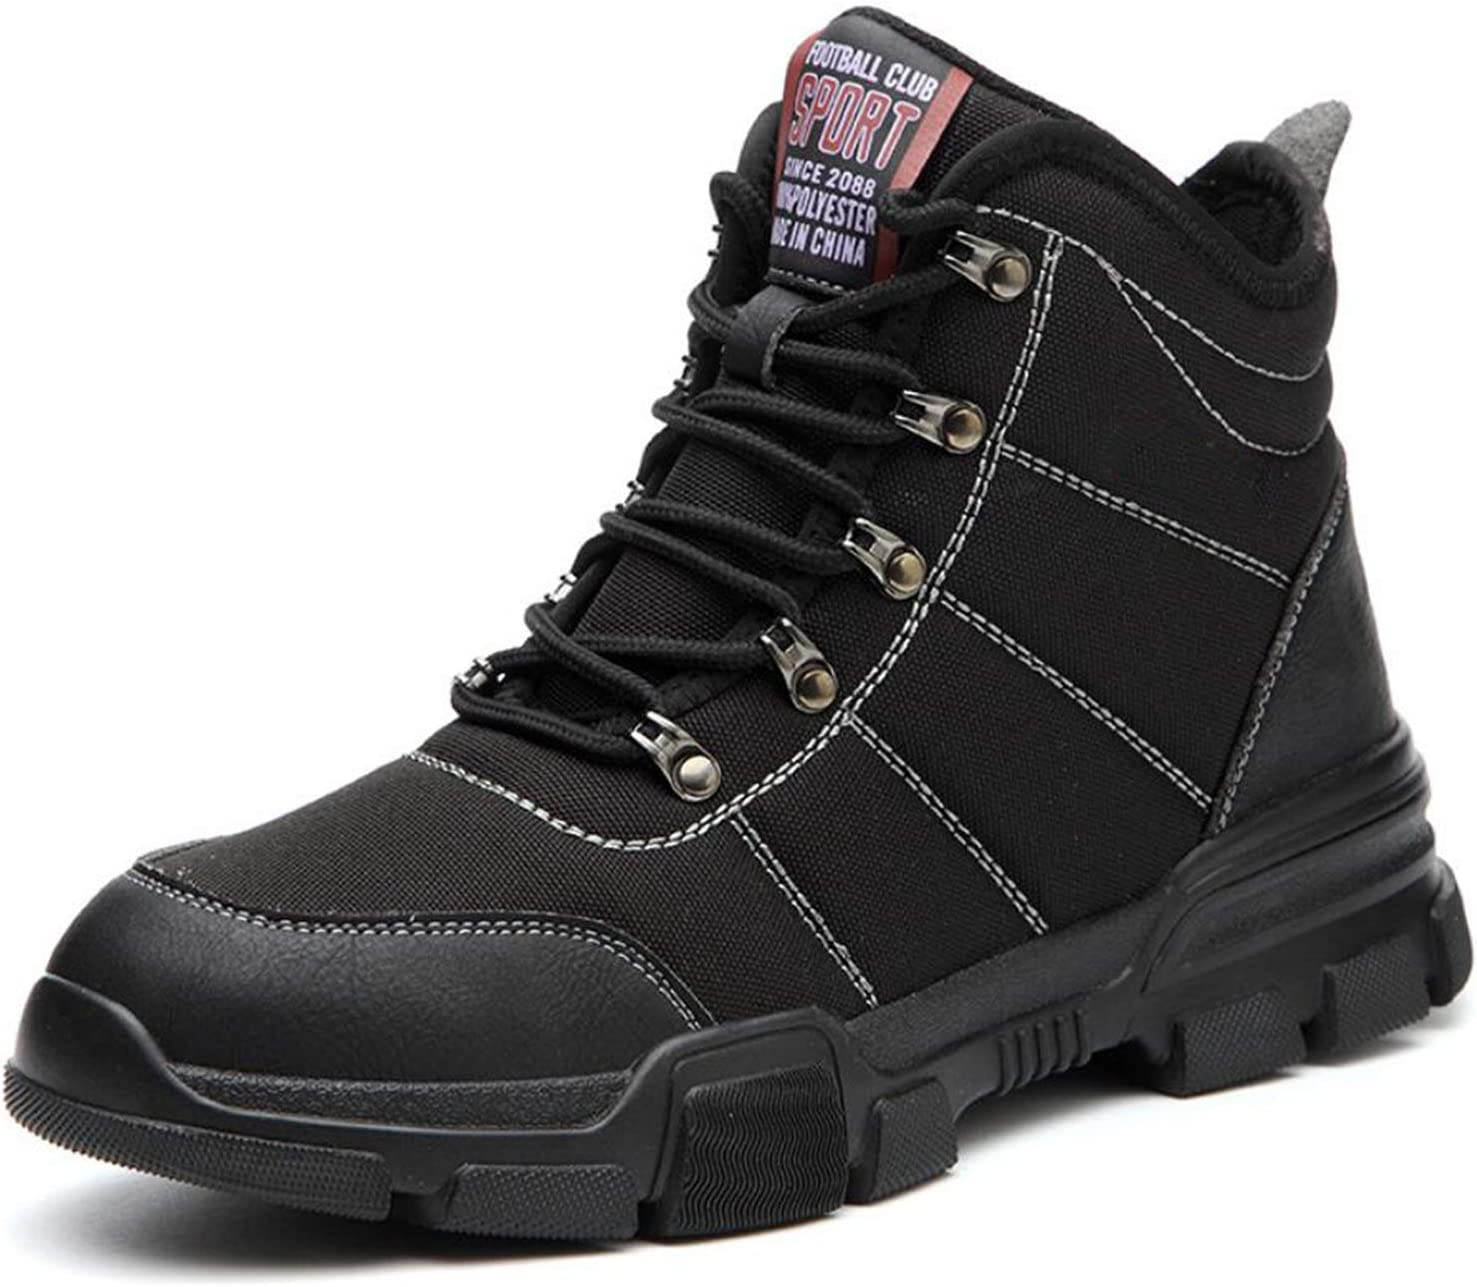 YLJXXY Men's Work Safety Shoes Indestructible Lightweight Steel Toe Footwear Slip Resistant Anti-Smash and Anti-Puncture Boots,Black,43